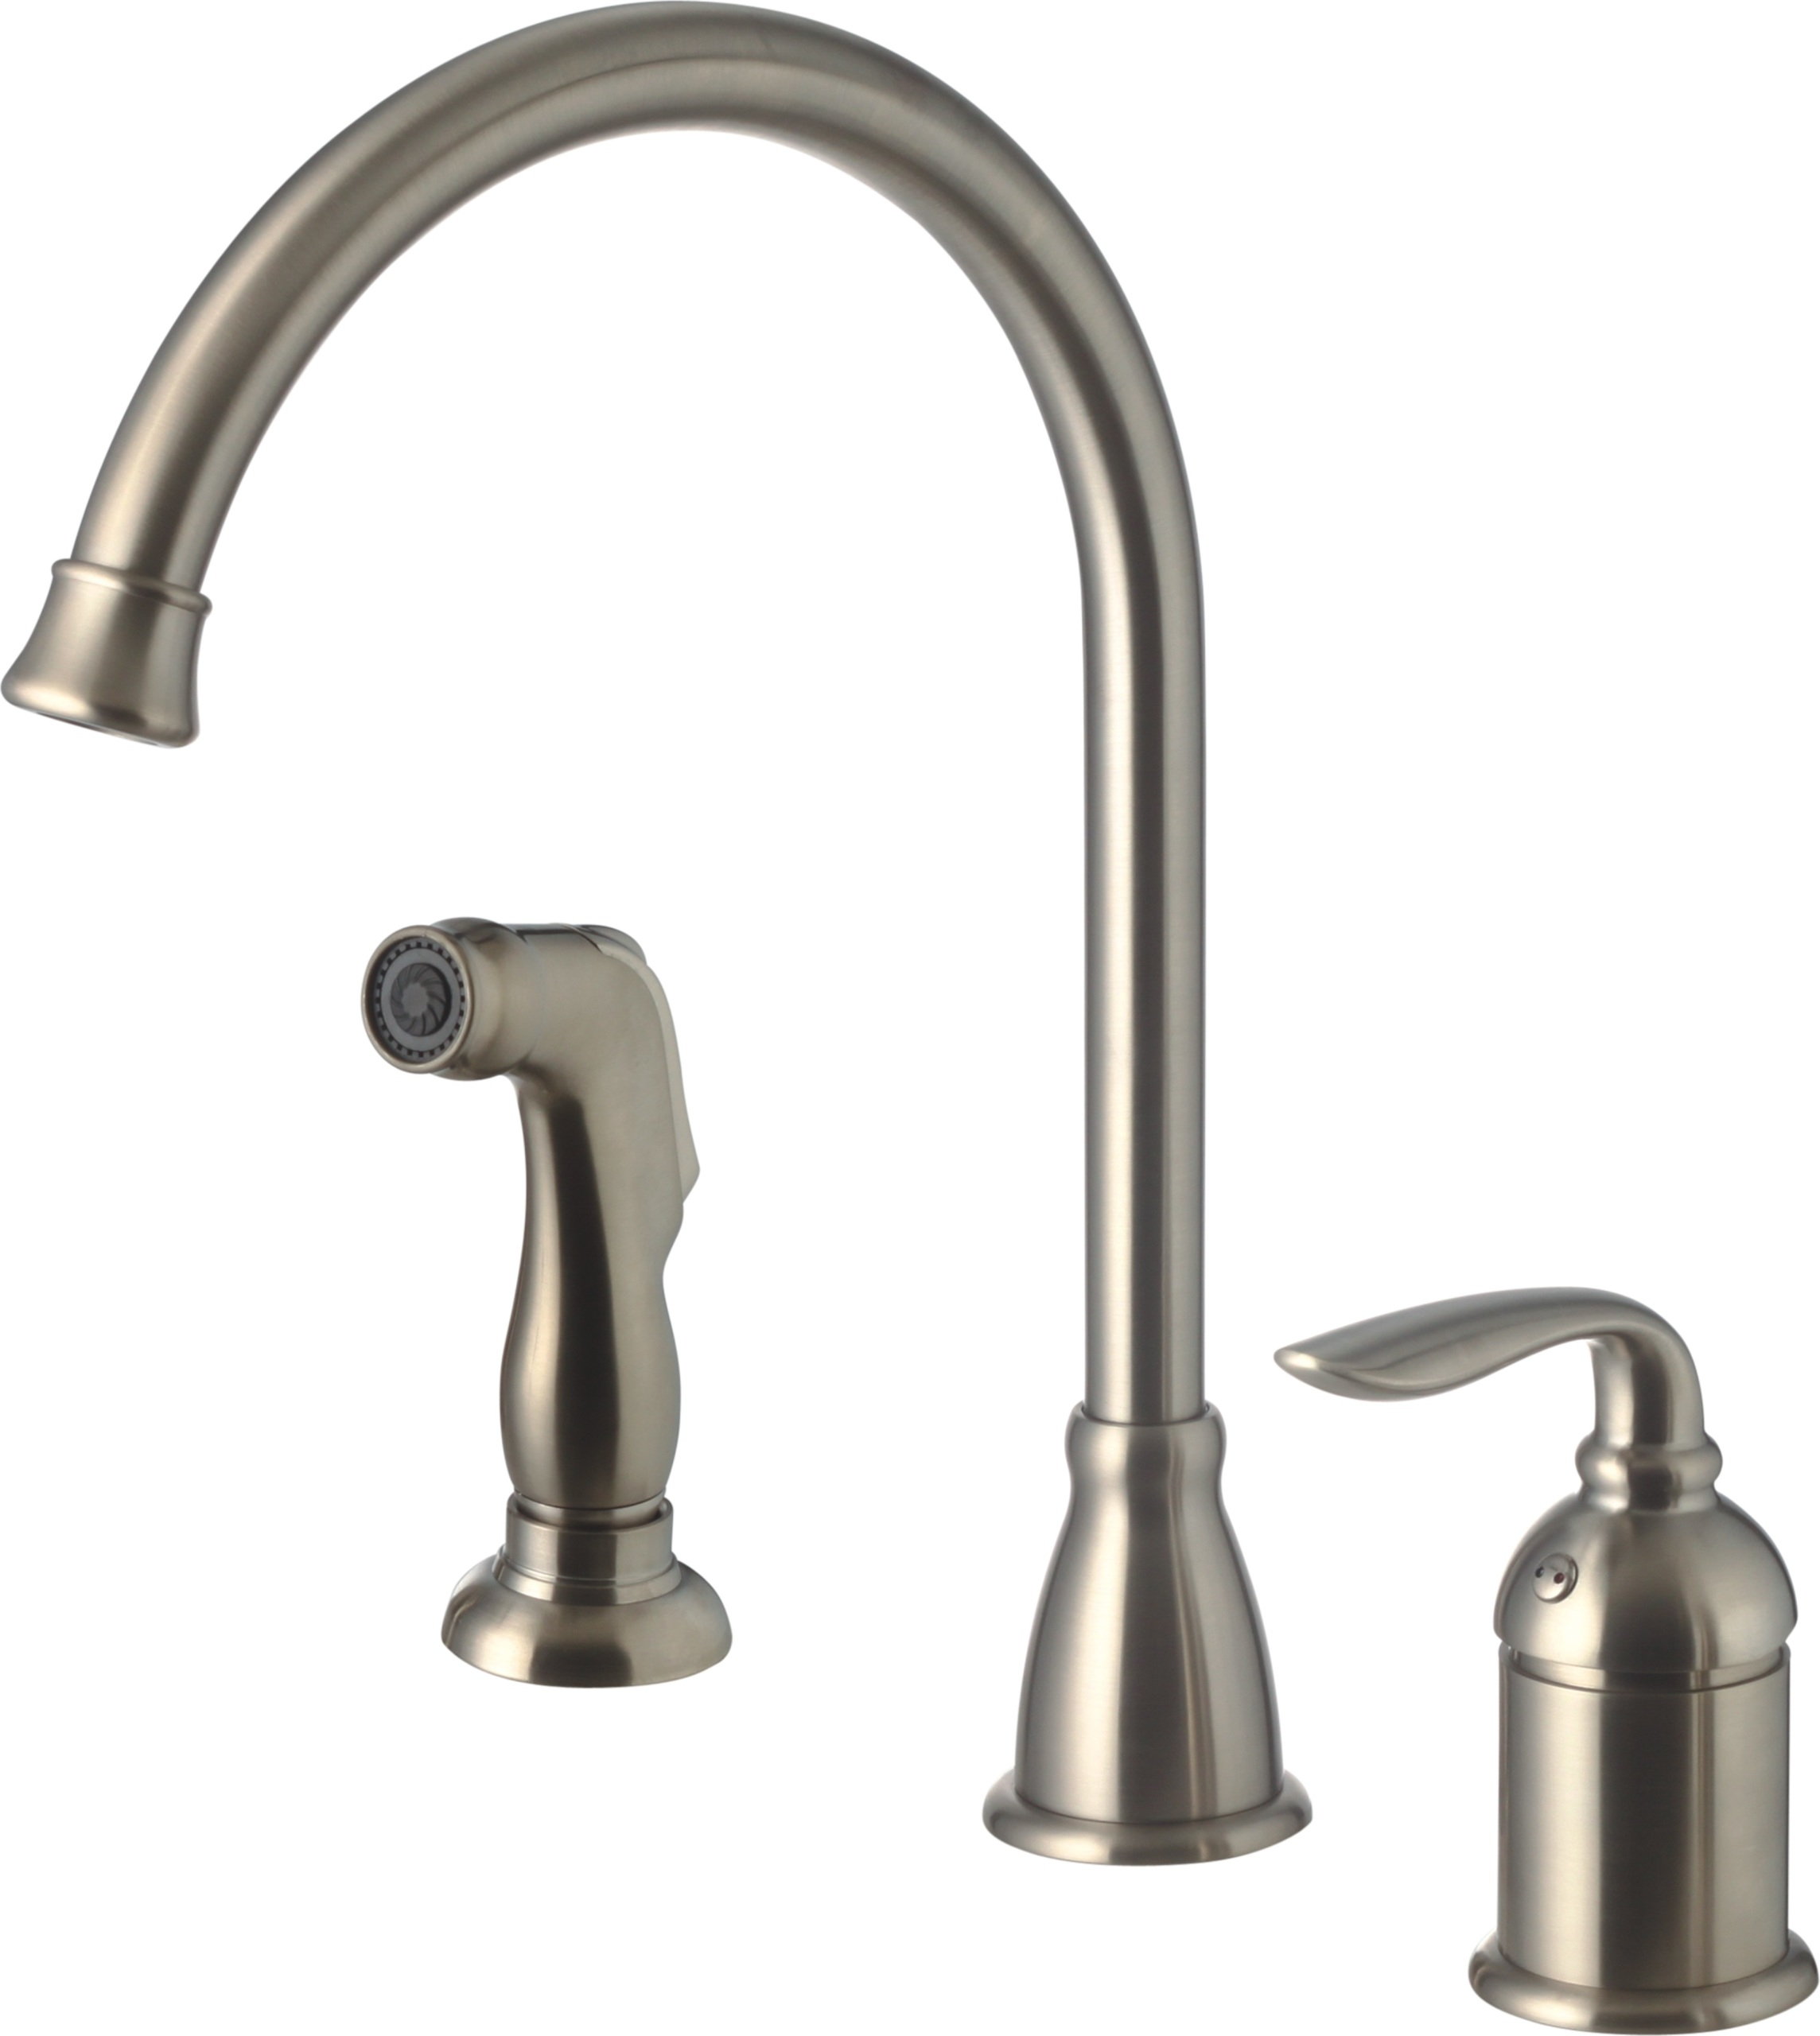 Brushed Nickel Kitchen Faucets Sale